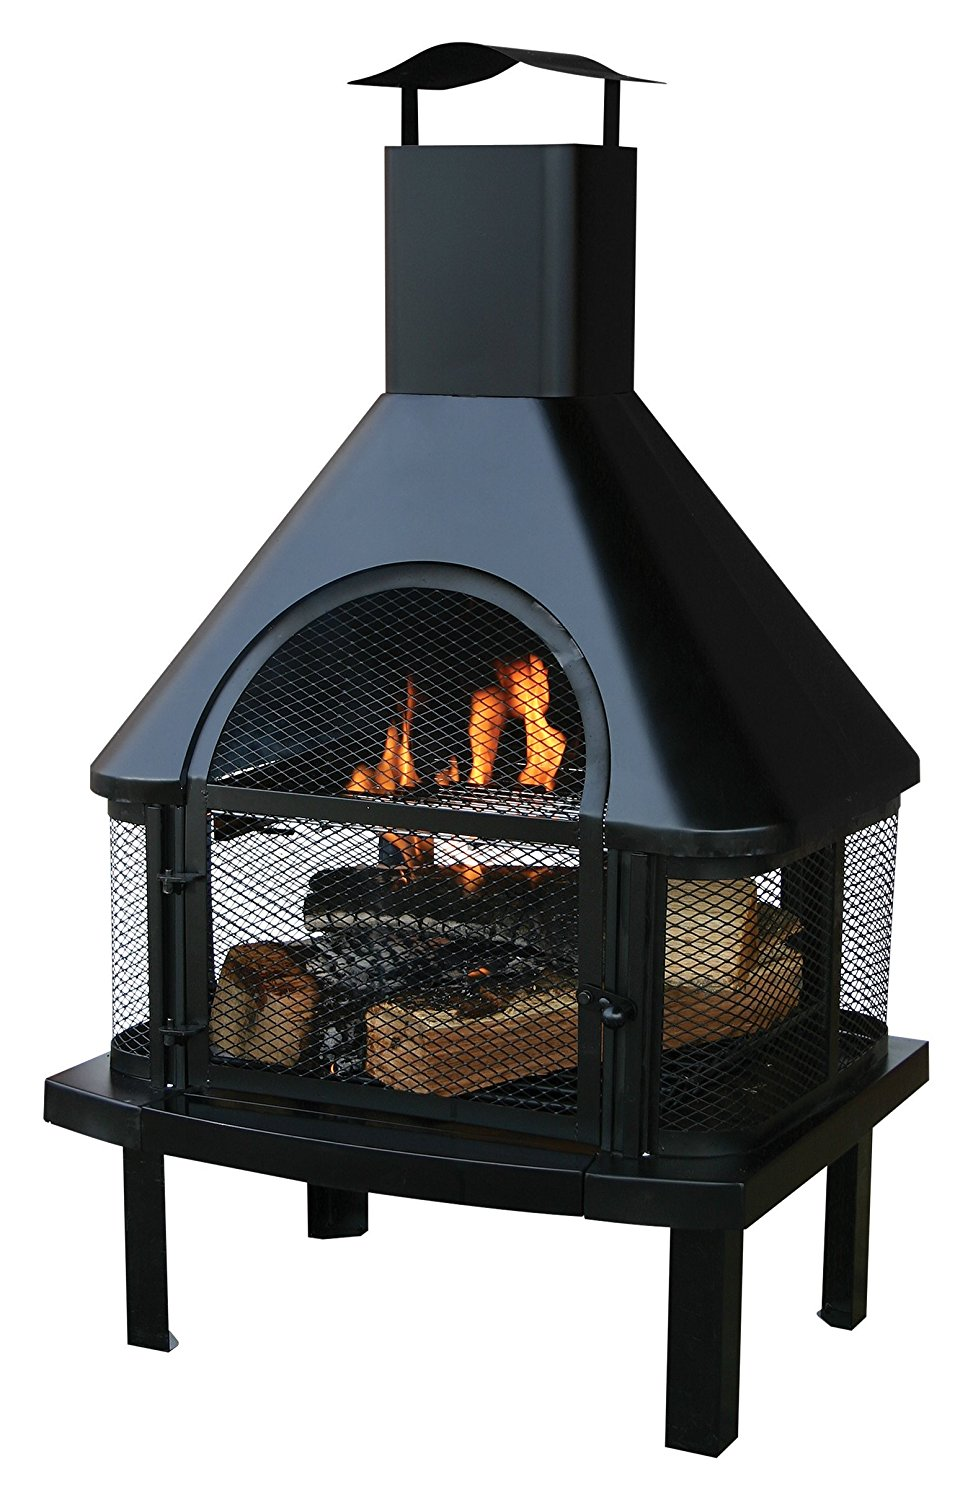 Uniflame Firehouse with Chimney, Black $122.99